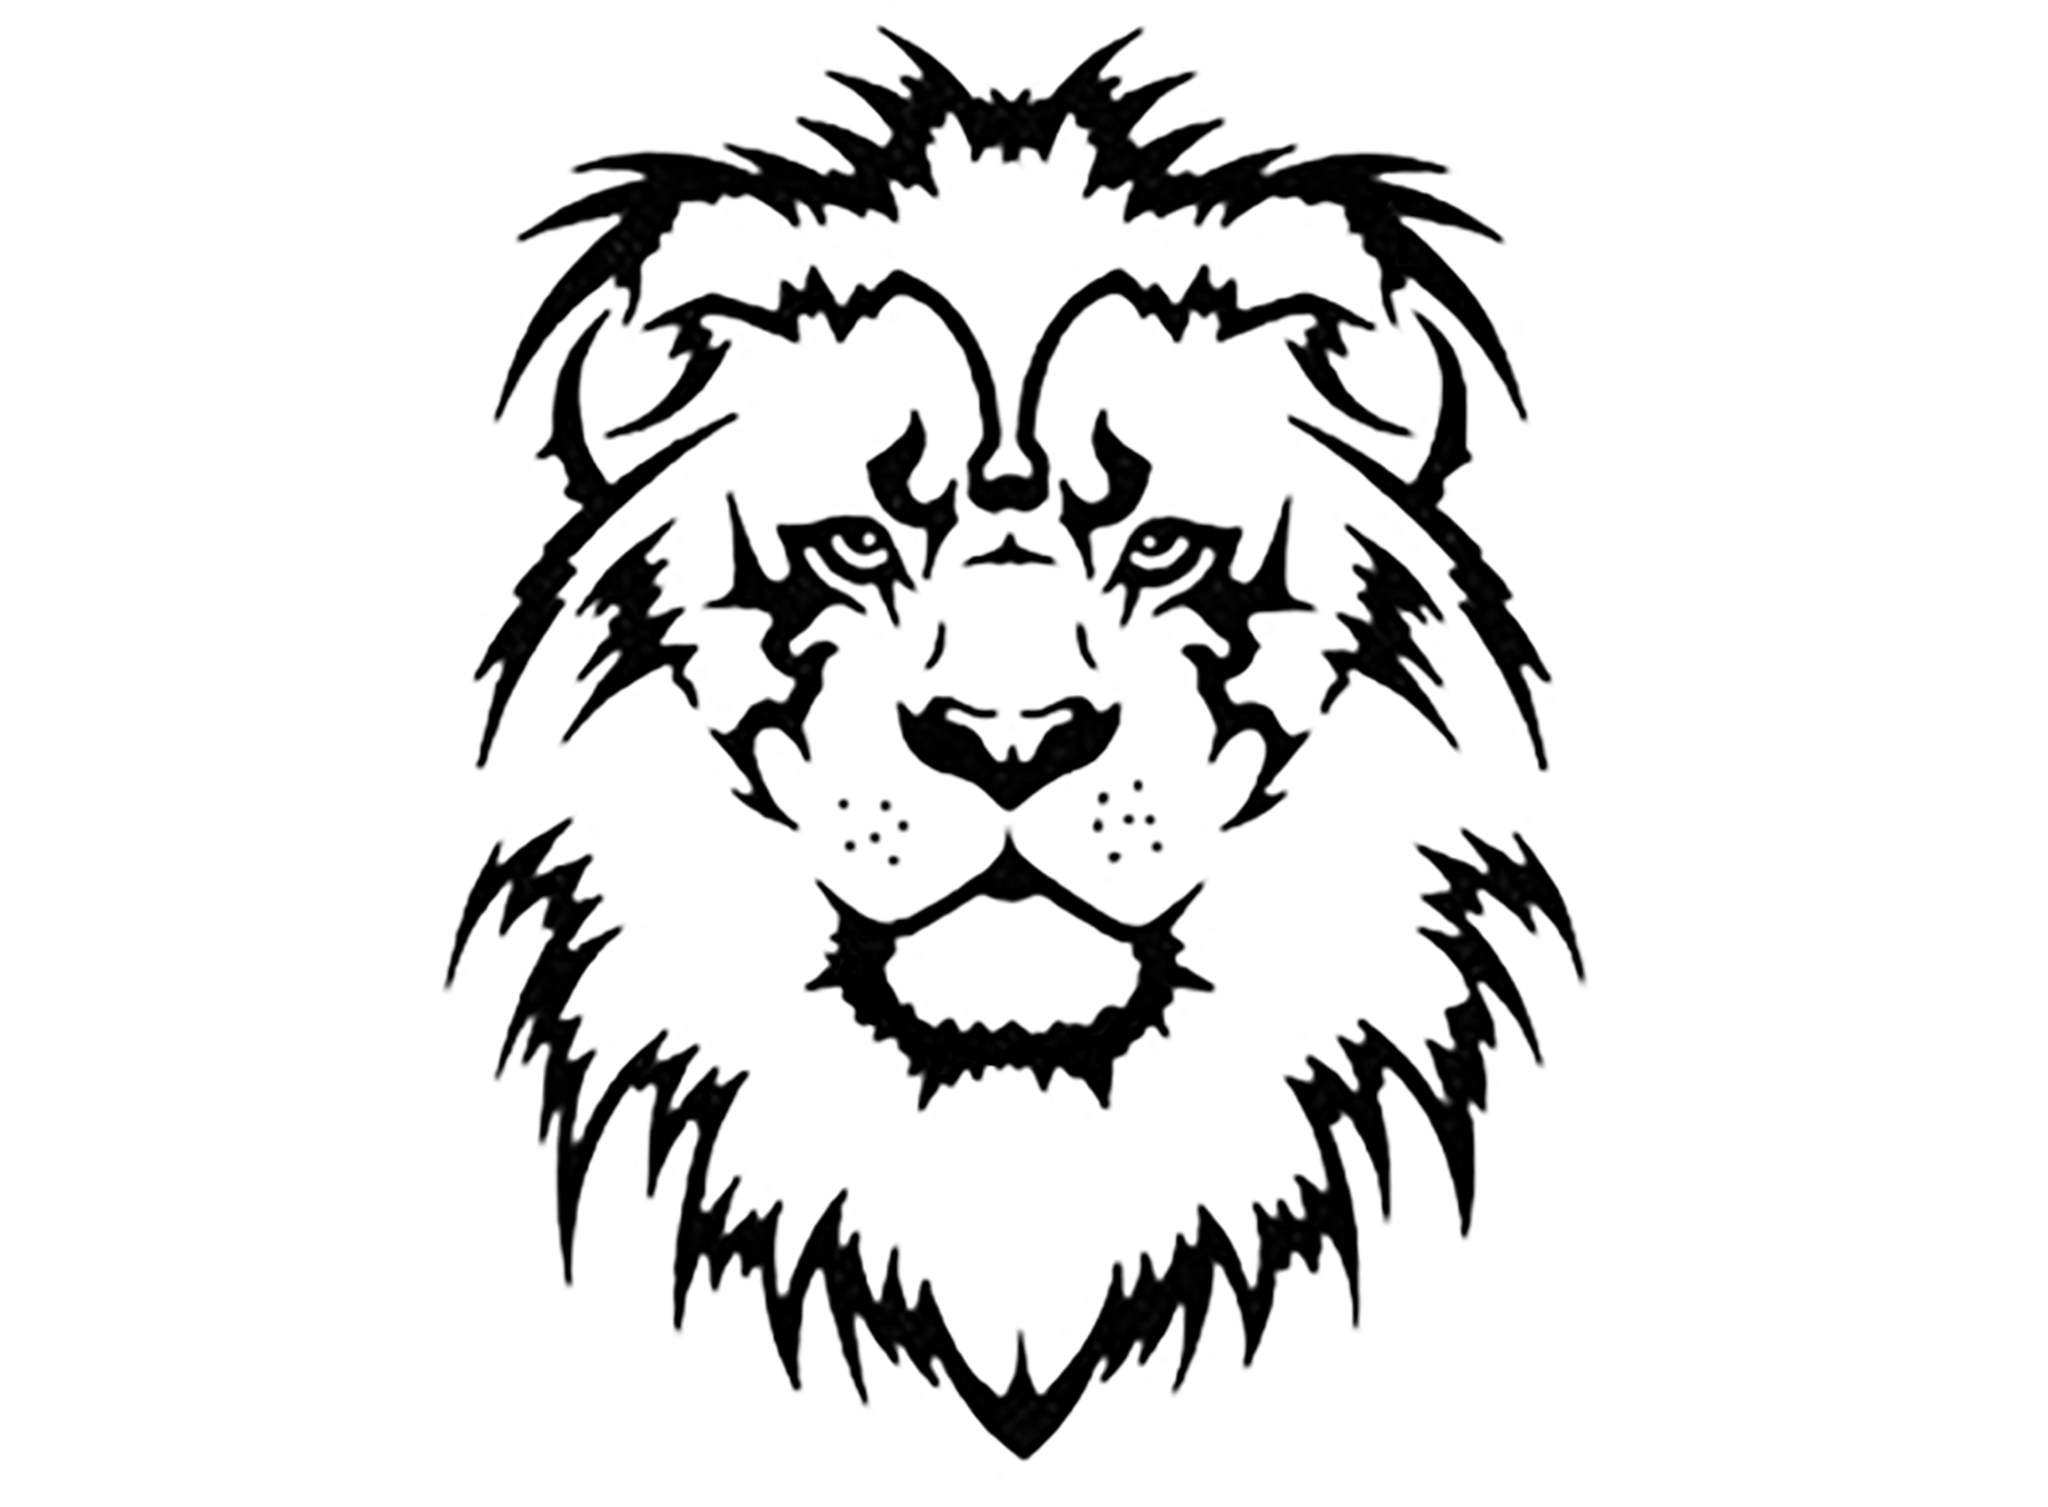 Car decals tribal graphic design zion series - Lion Head 10 Pcs 1 1 4 Black Fused Glass Decals